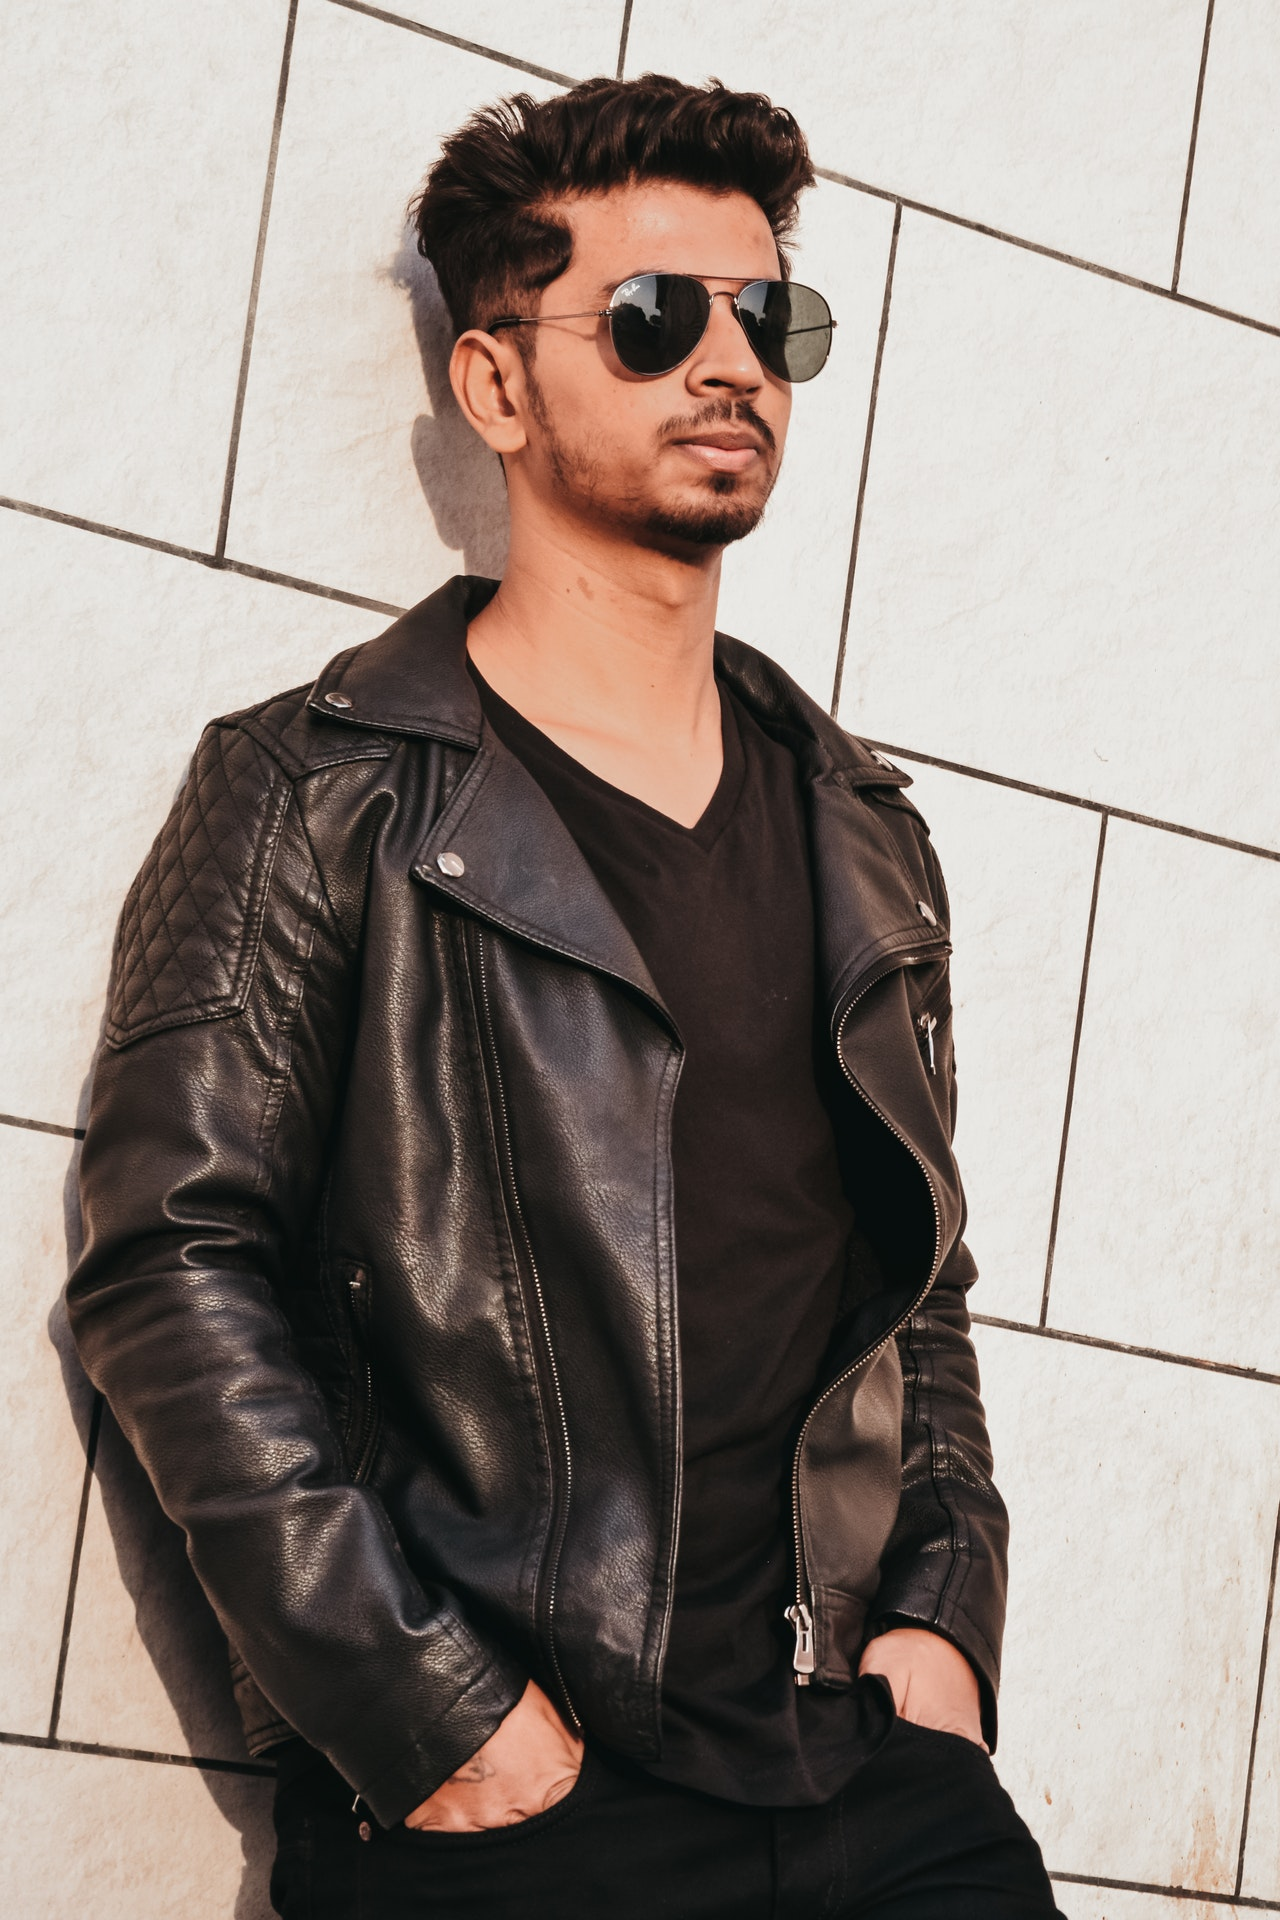 man wearing a black leather jacket leaning against a white wall.